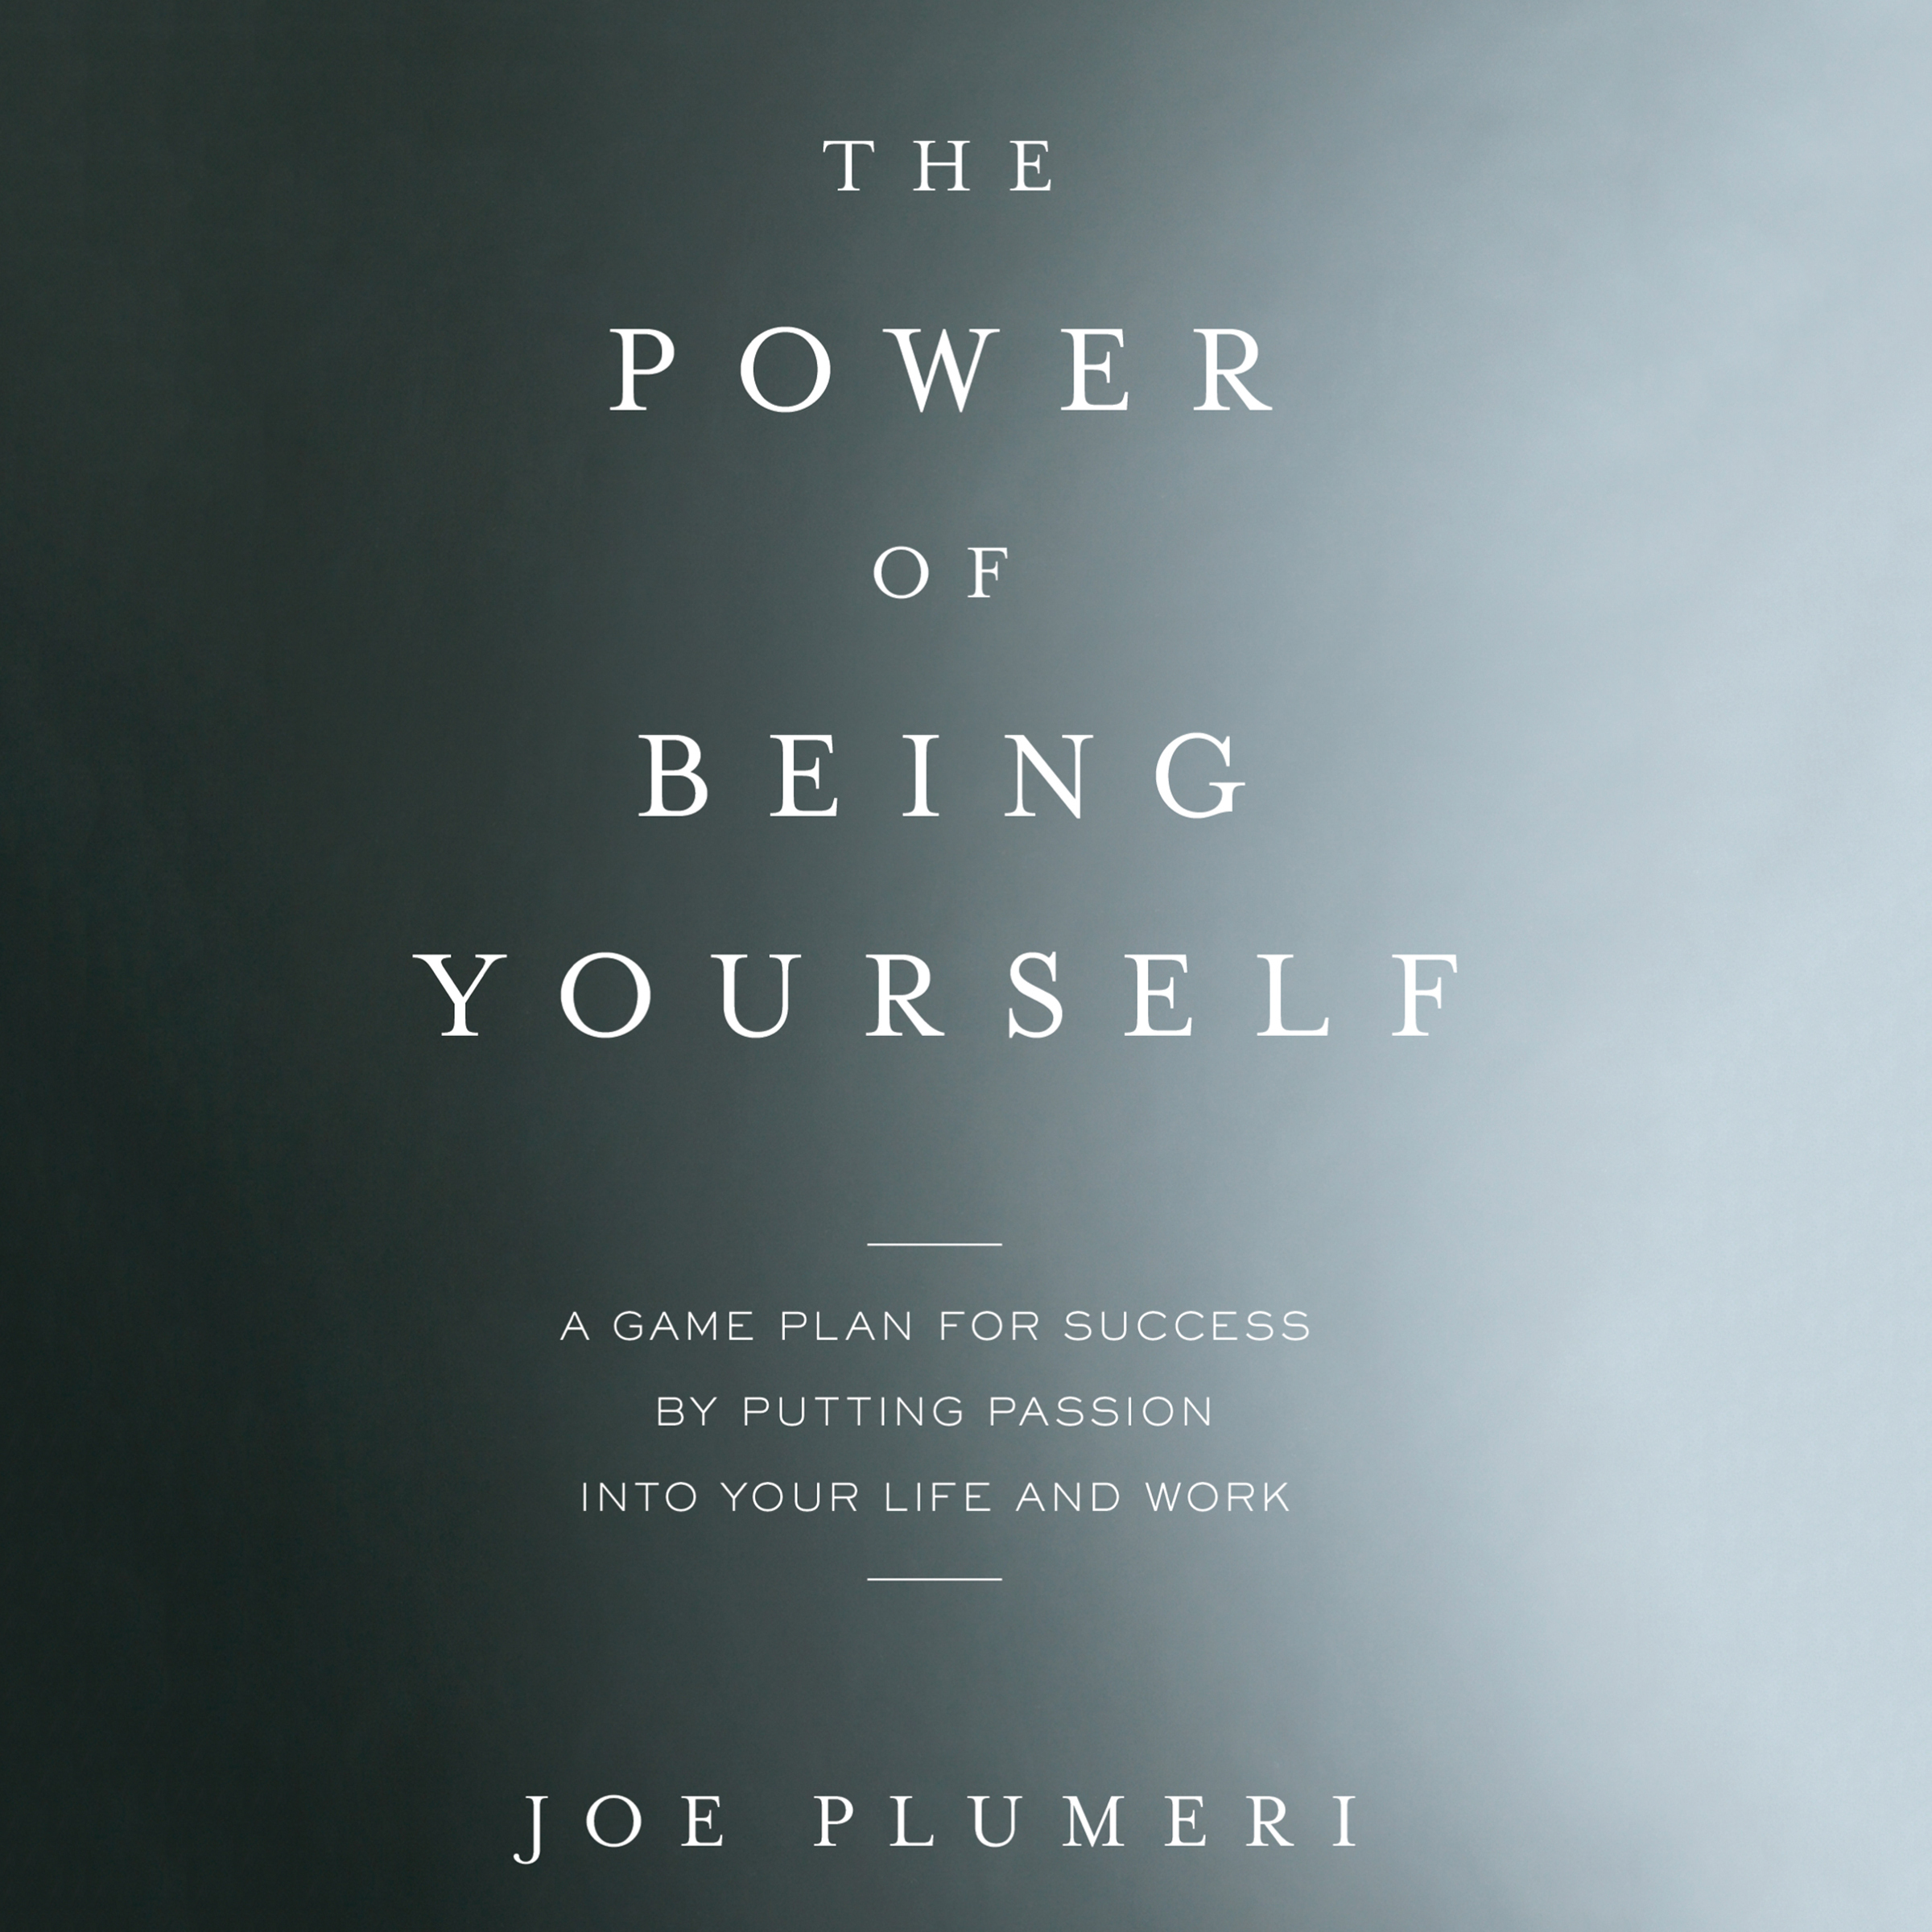 Printable The Power of Being Yourself: A Game Plan for Success by Putting Passion into Your Life and Work Audiobook Cover Art